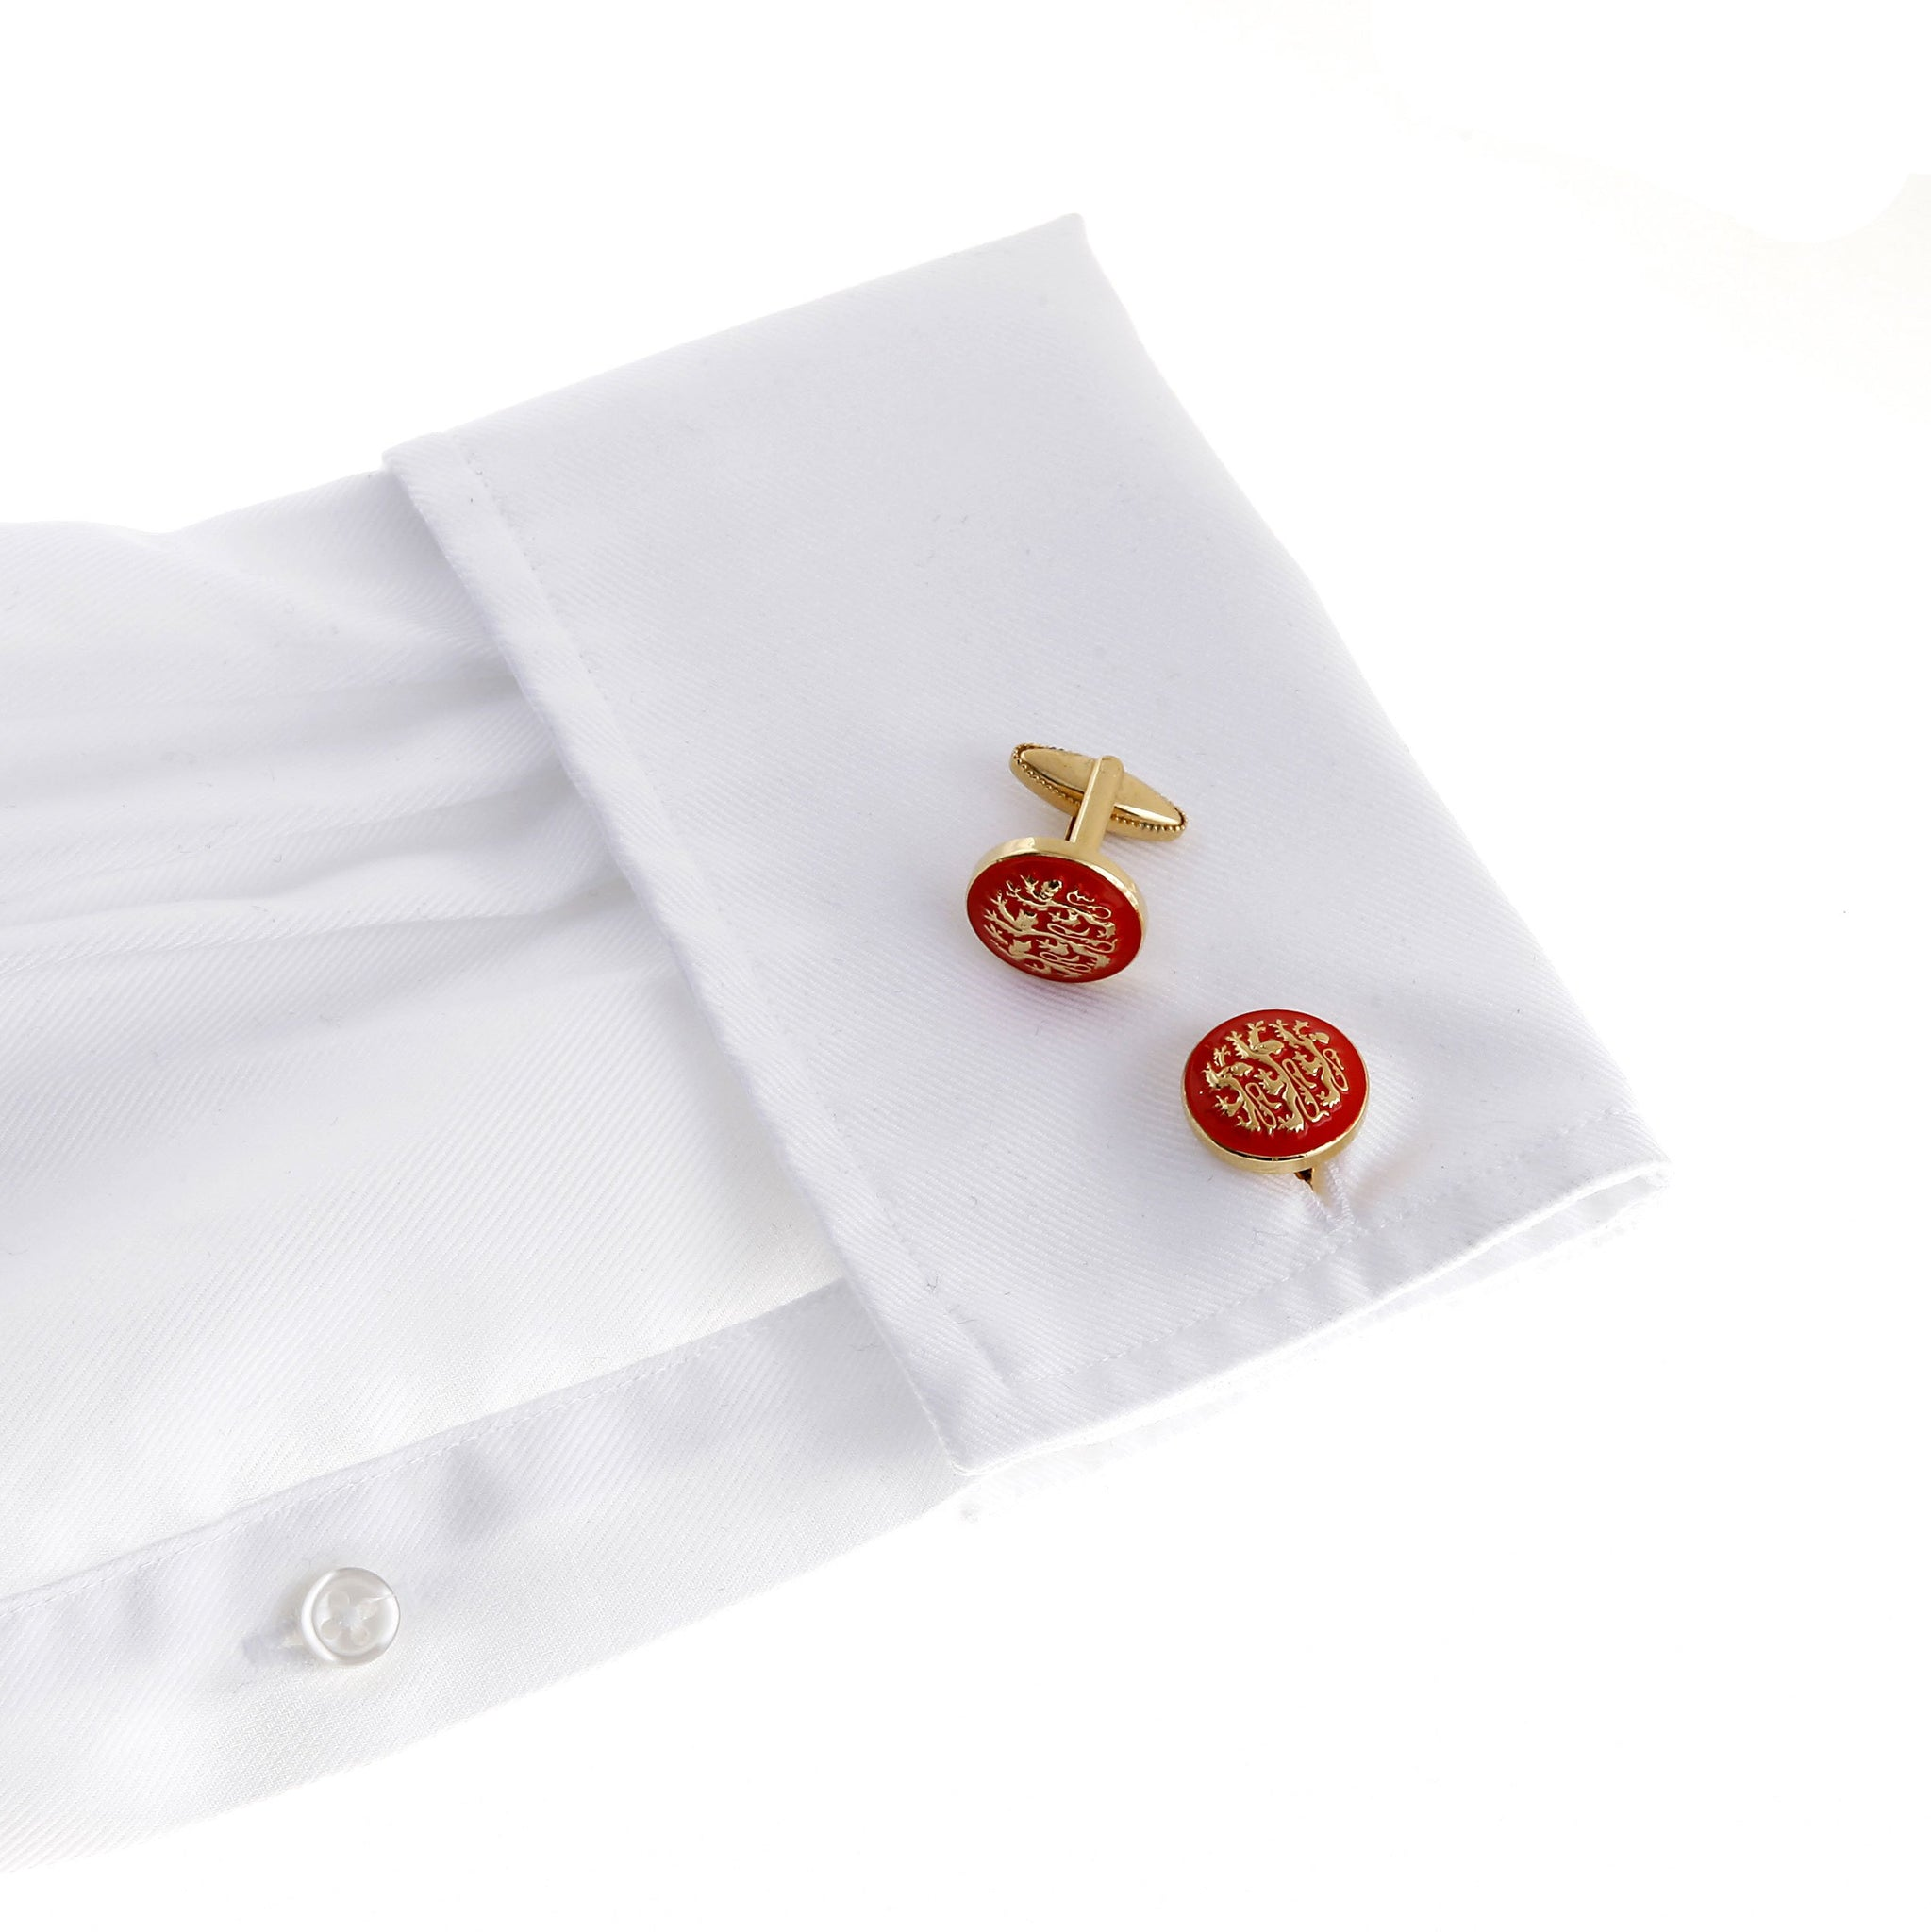 Three English Lions Cufflink